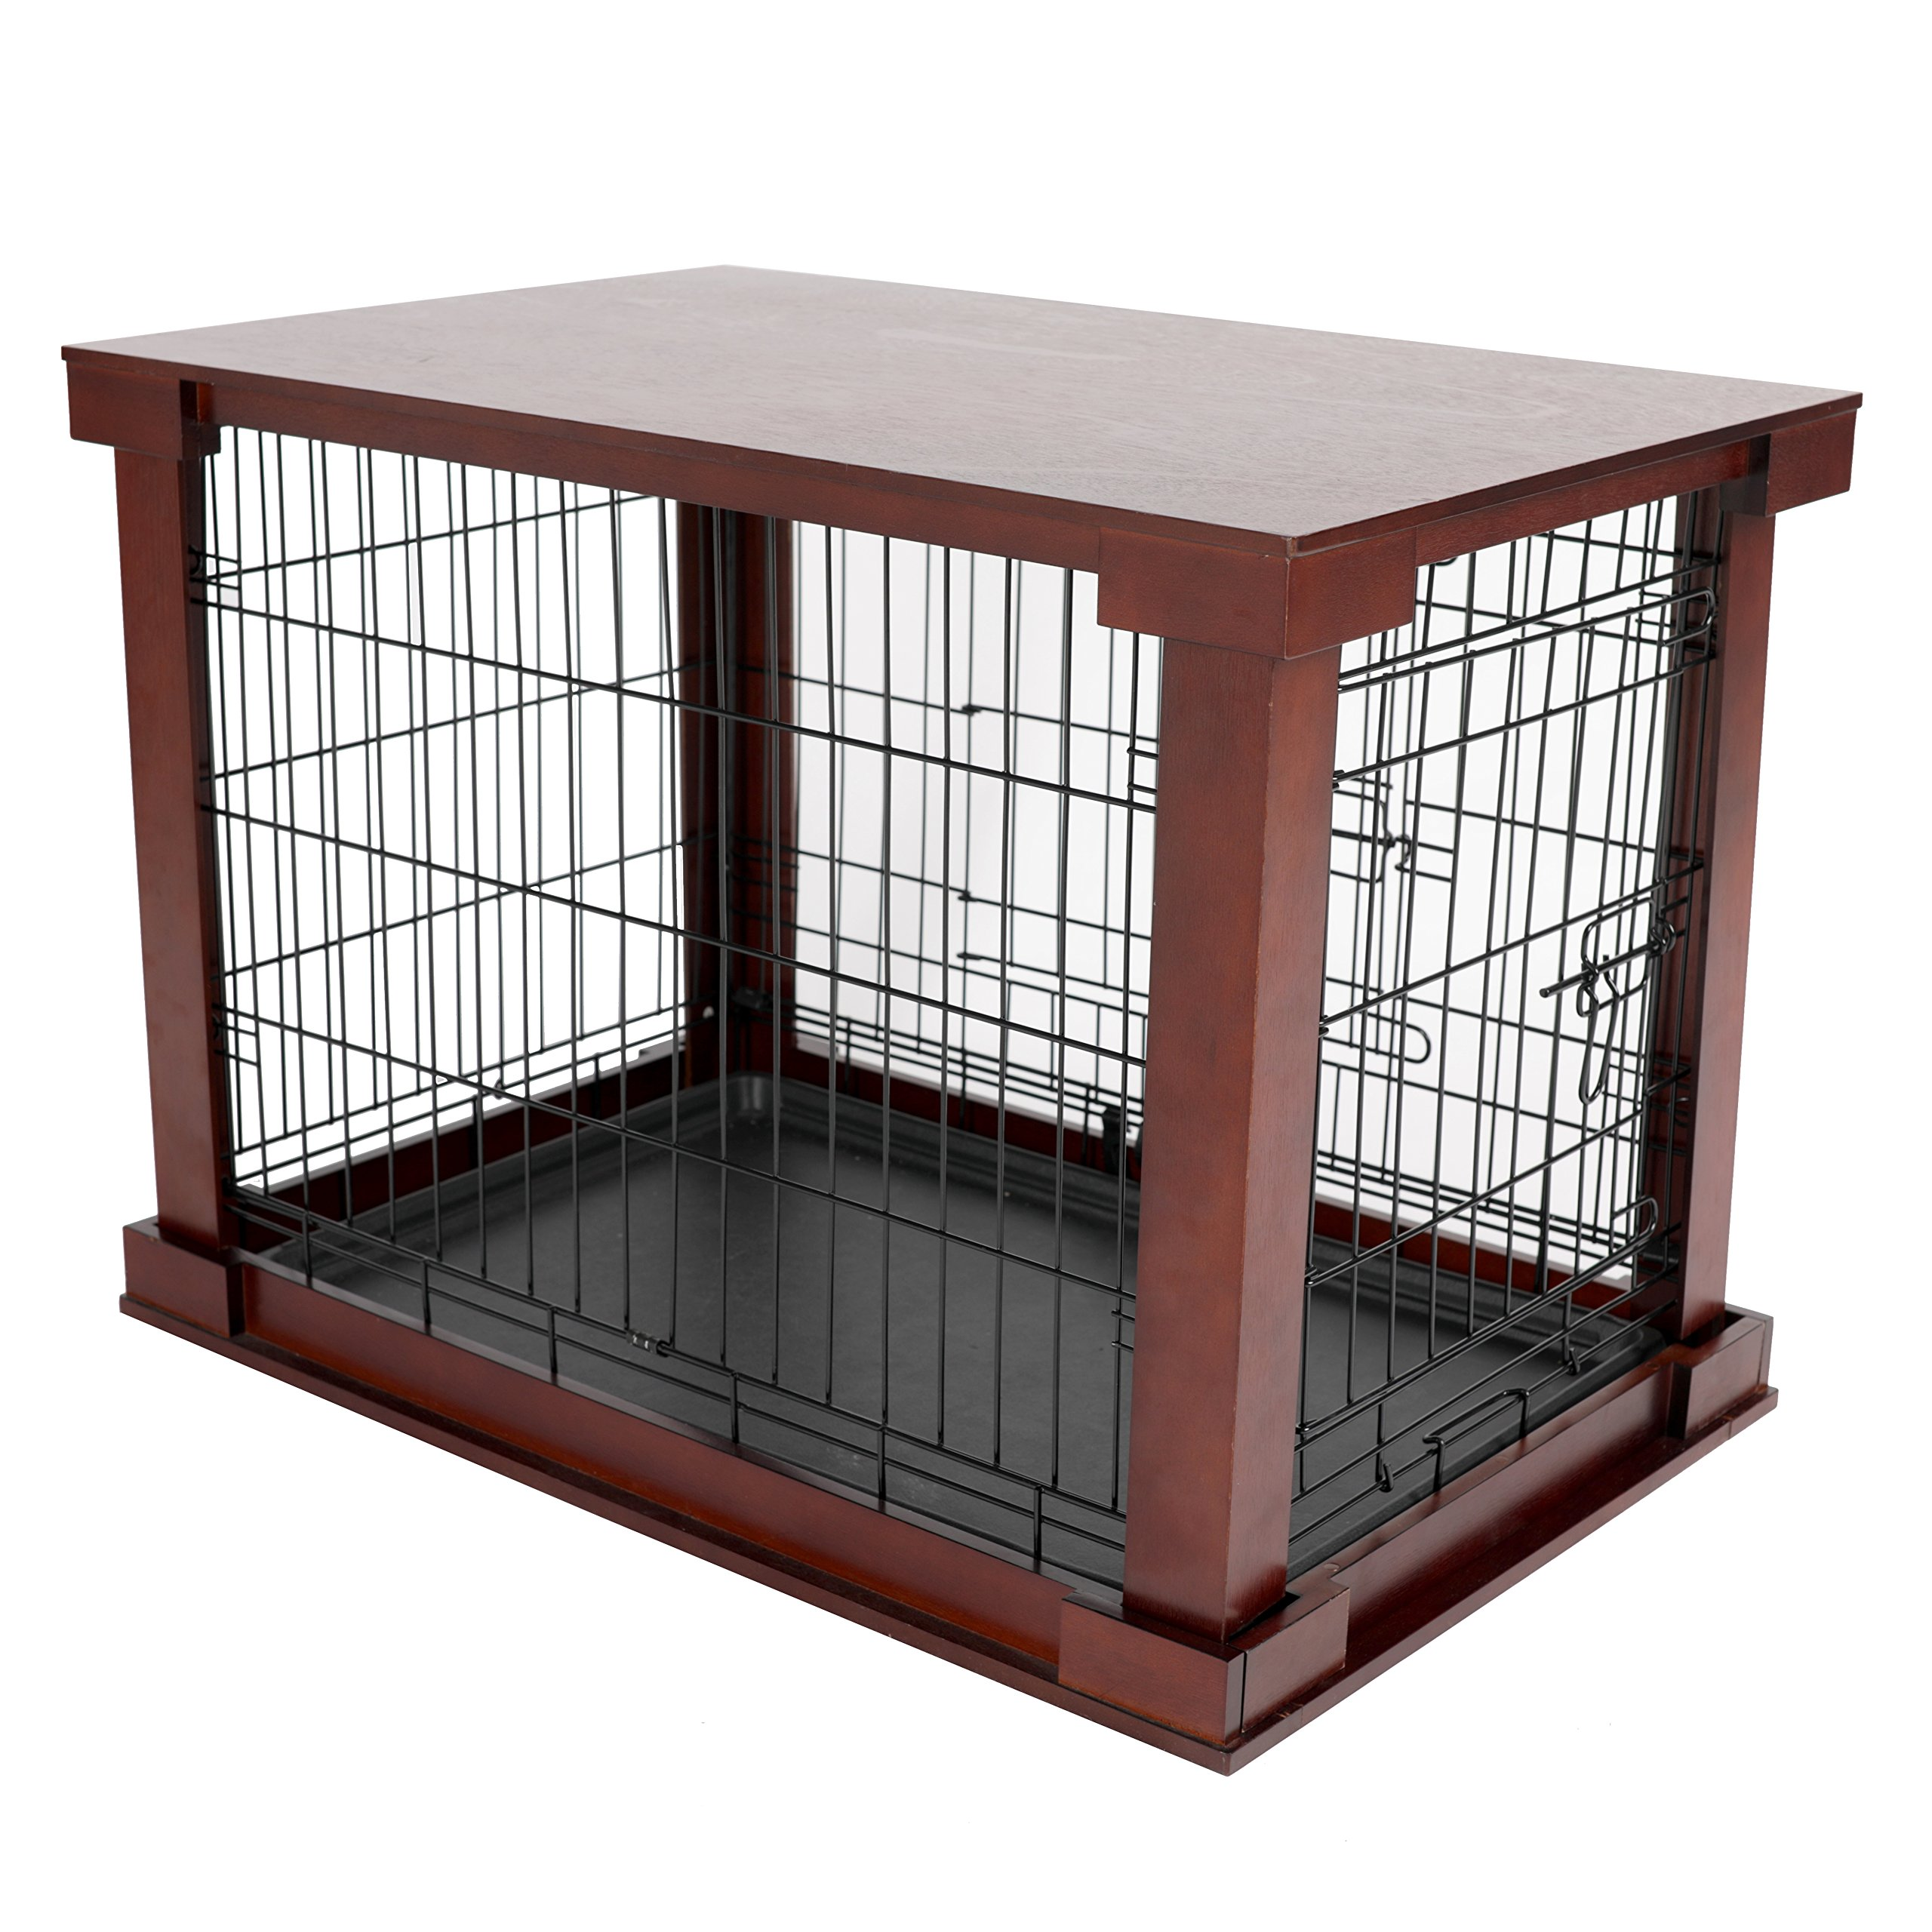 Merry Products Pet Cage with Crate Cover, Large by Merry Pet